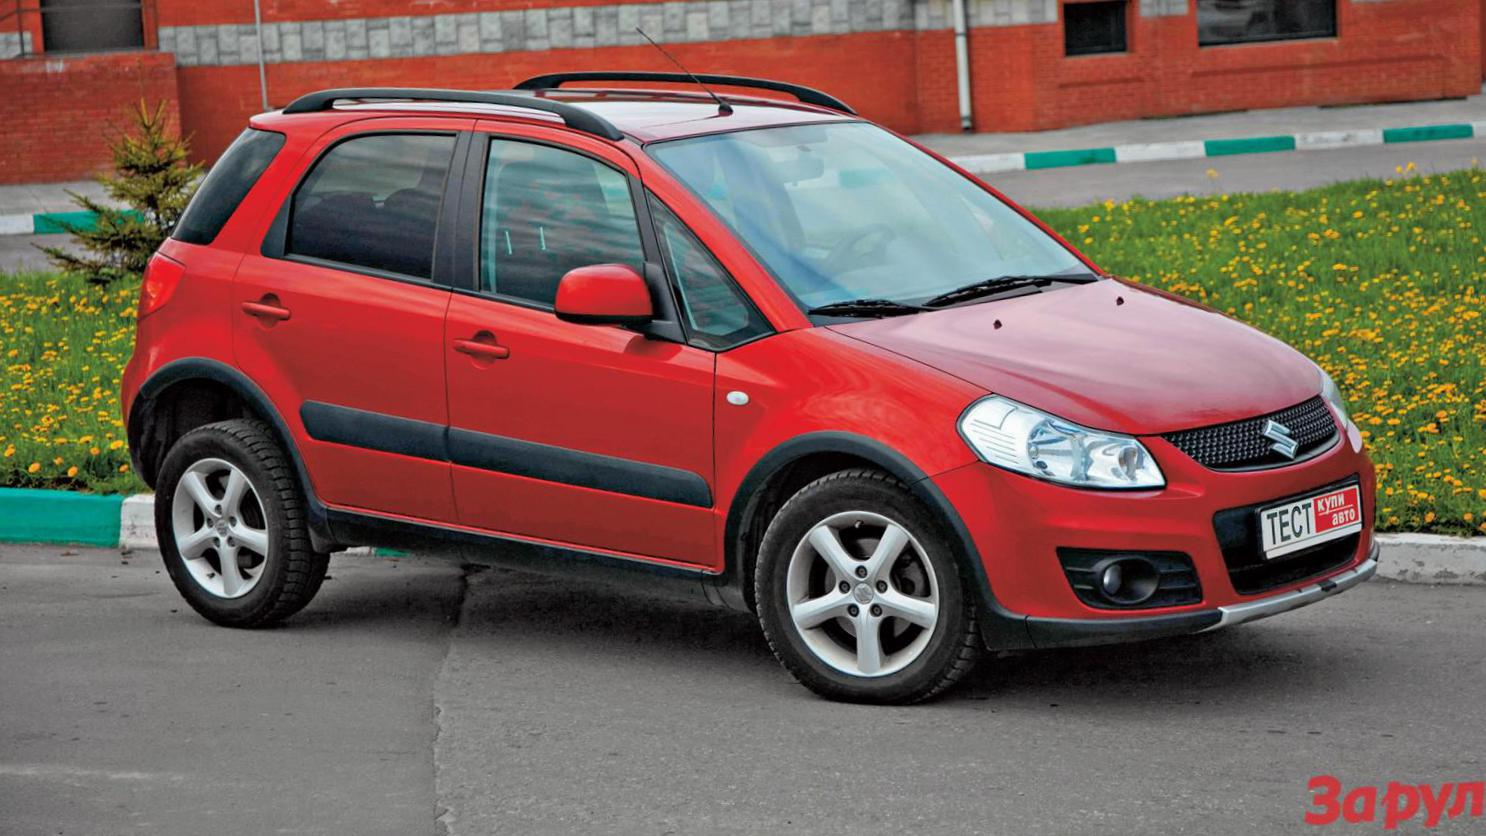 SX4 Urban Suzuki prices sedan